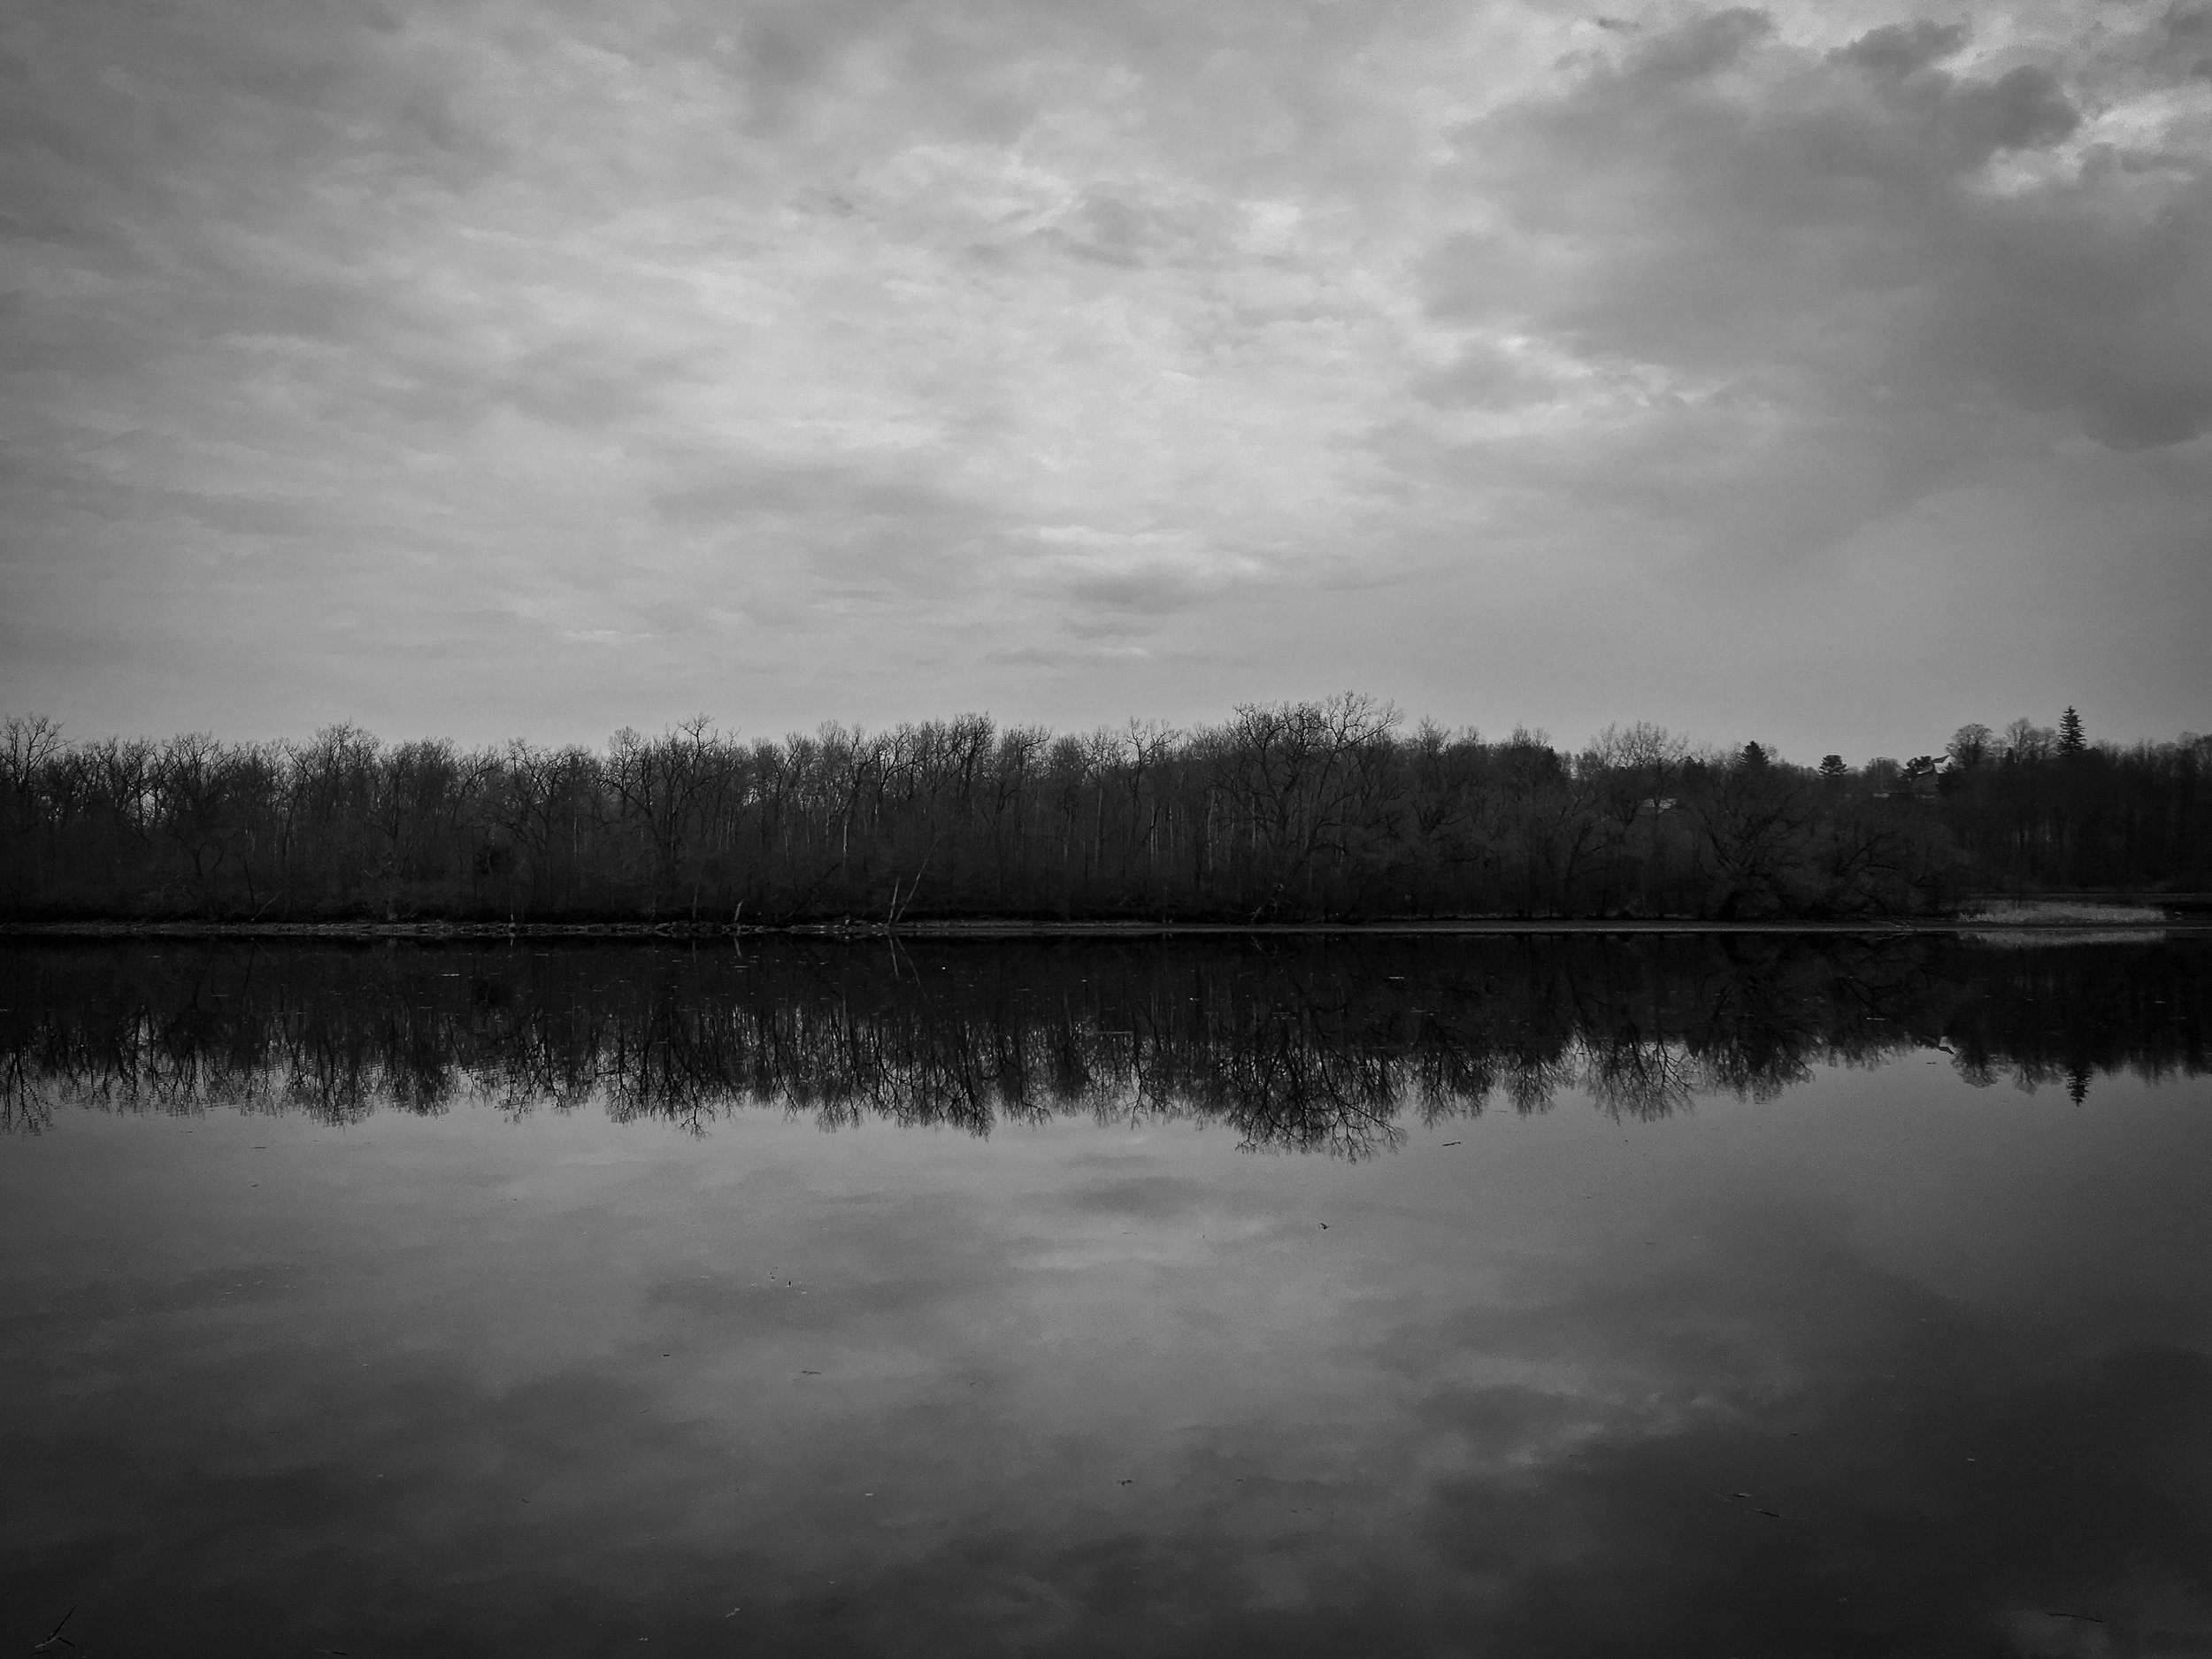 paperspace.ink_bicycletour_erie-canal-trail-9BW.jpg